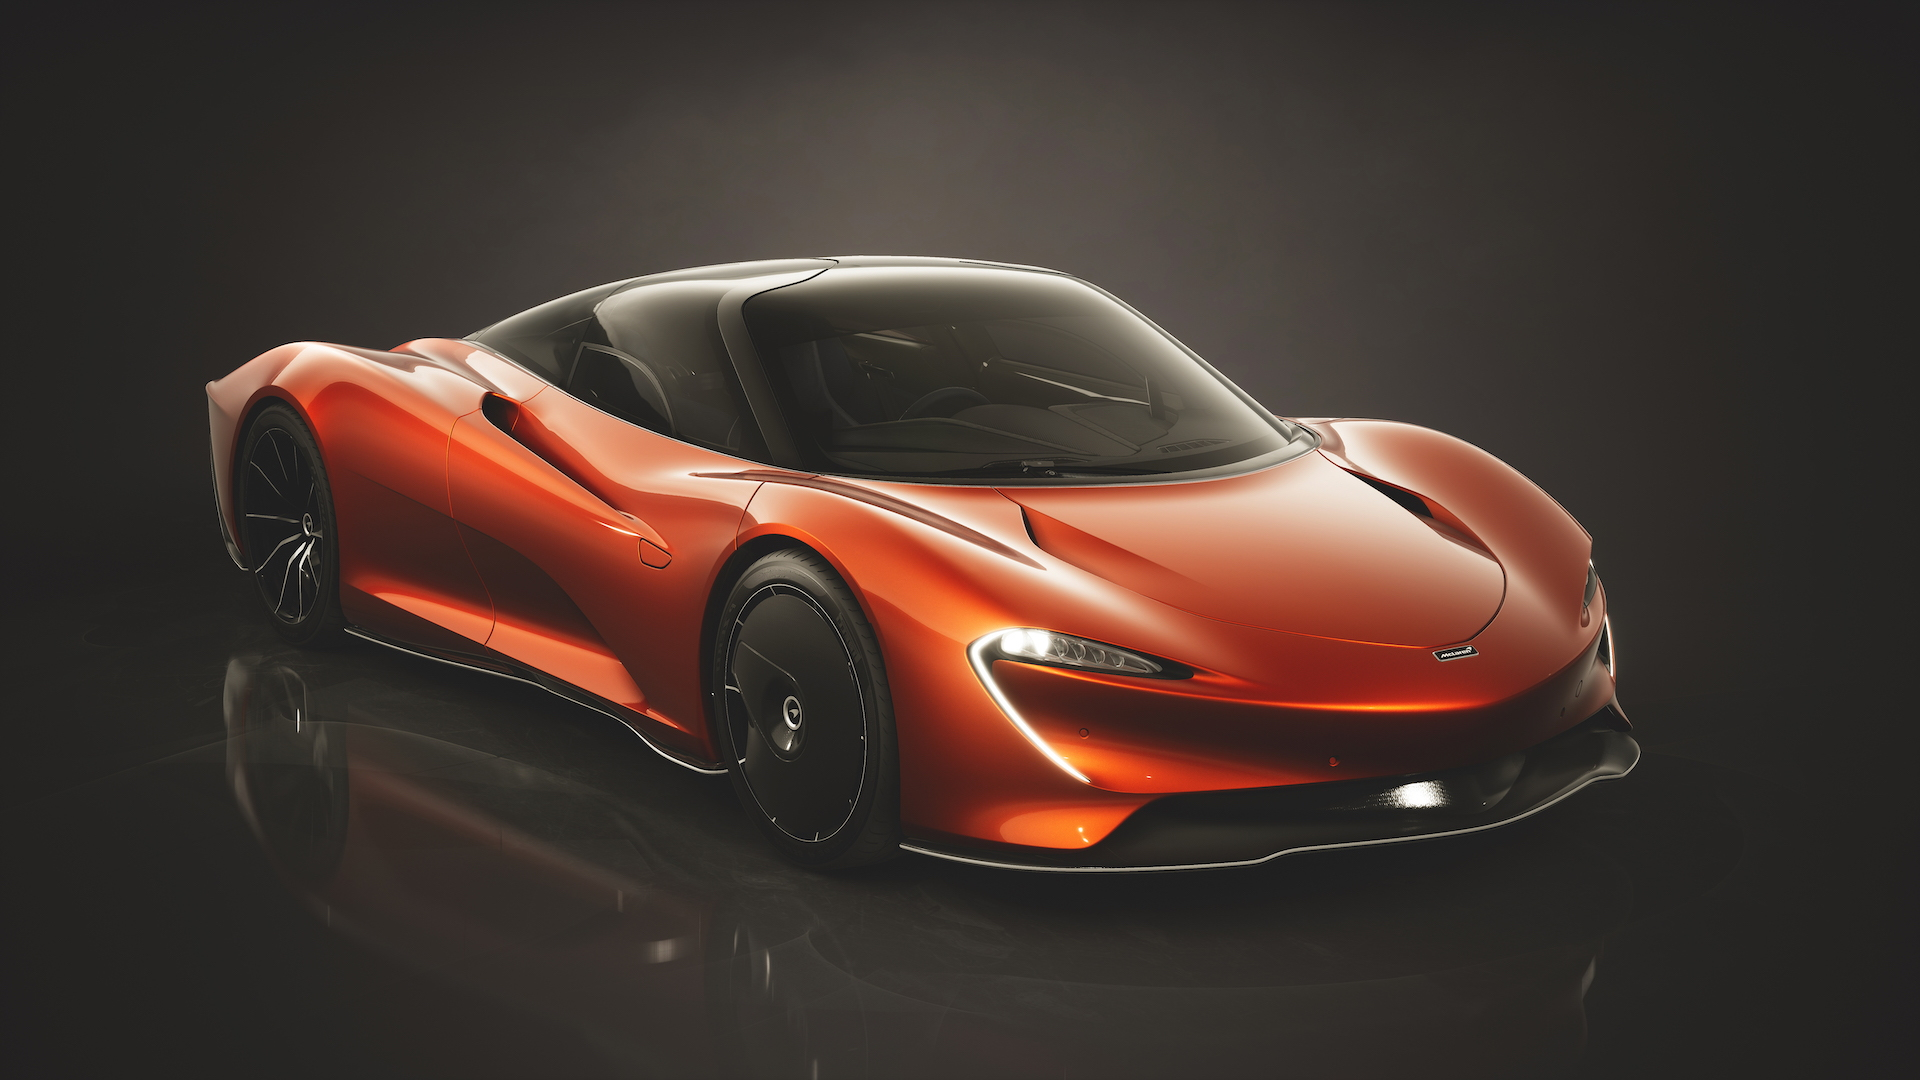 McLaren Speedtail design theme